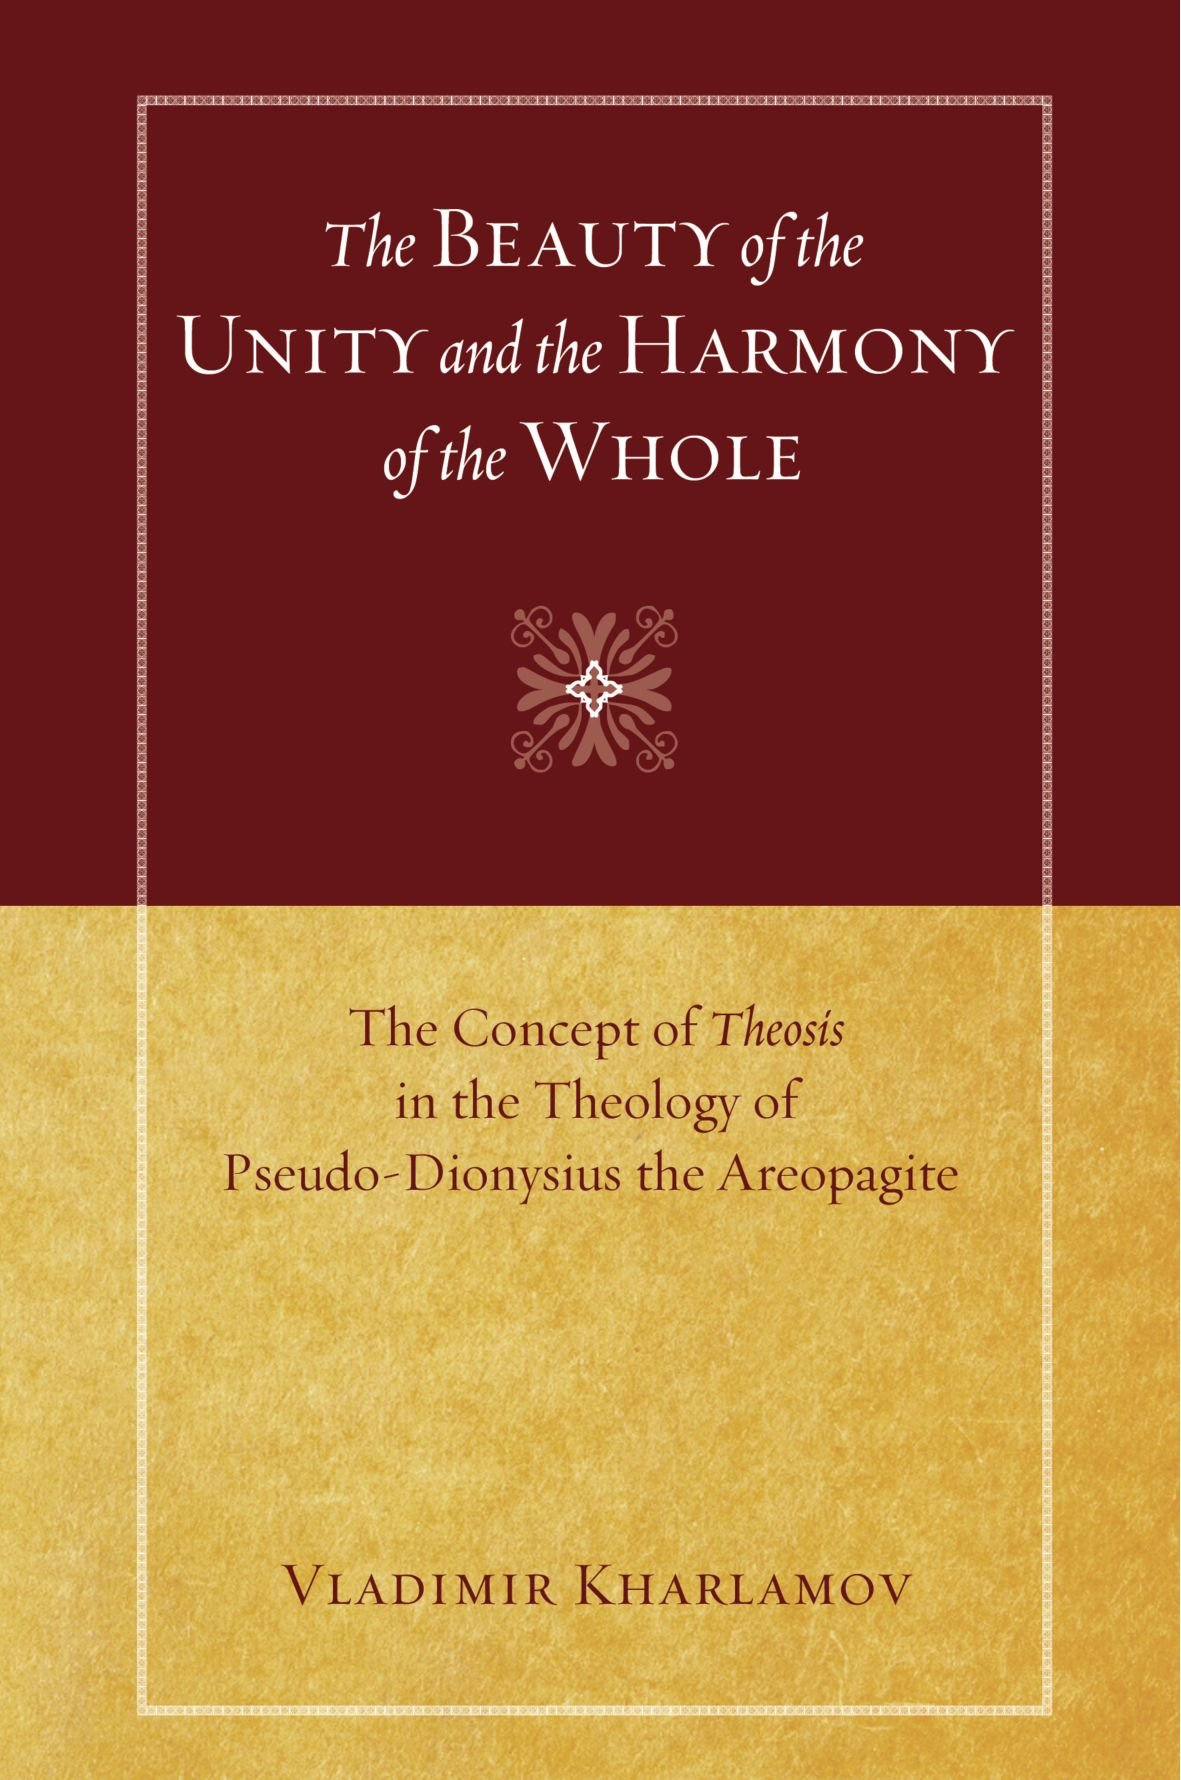 Download The Beauty of the Unity and the Harmony of the Whole: The Concept of Theosis in the Theology of Pseudo-Dionysius the Areopagite pdf epub